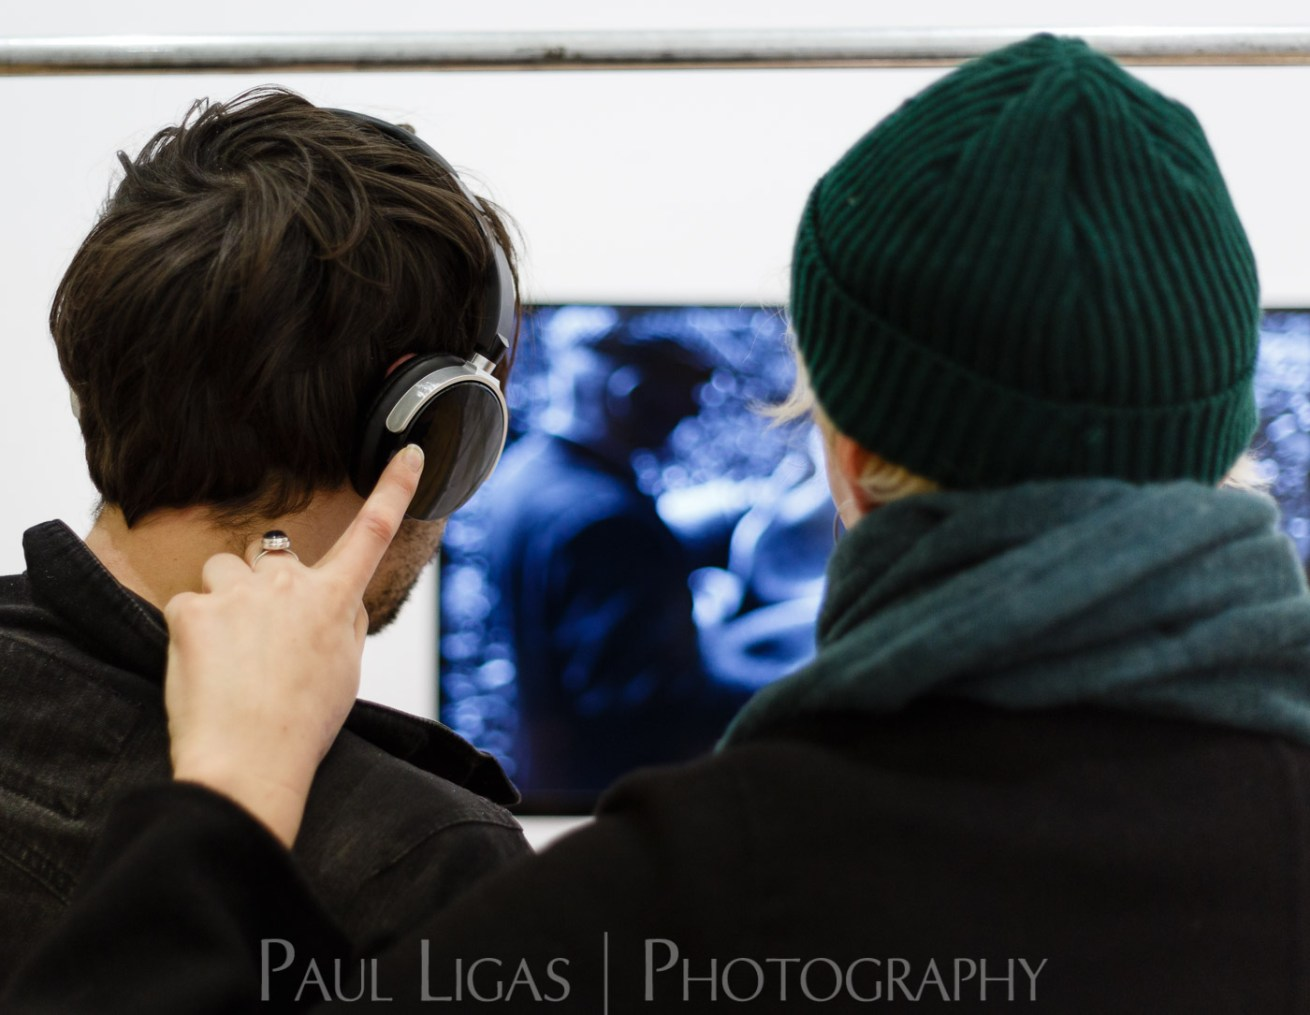 General Public, Hereford, Herefordshire event photographer herefordshire photography 7271